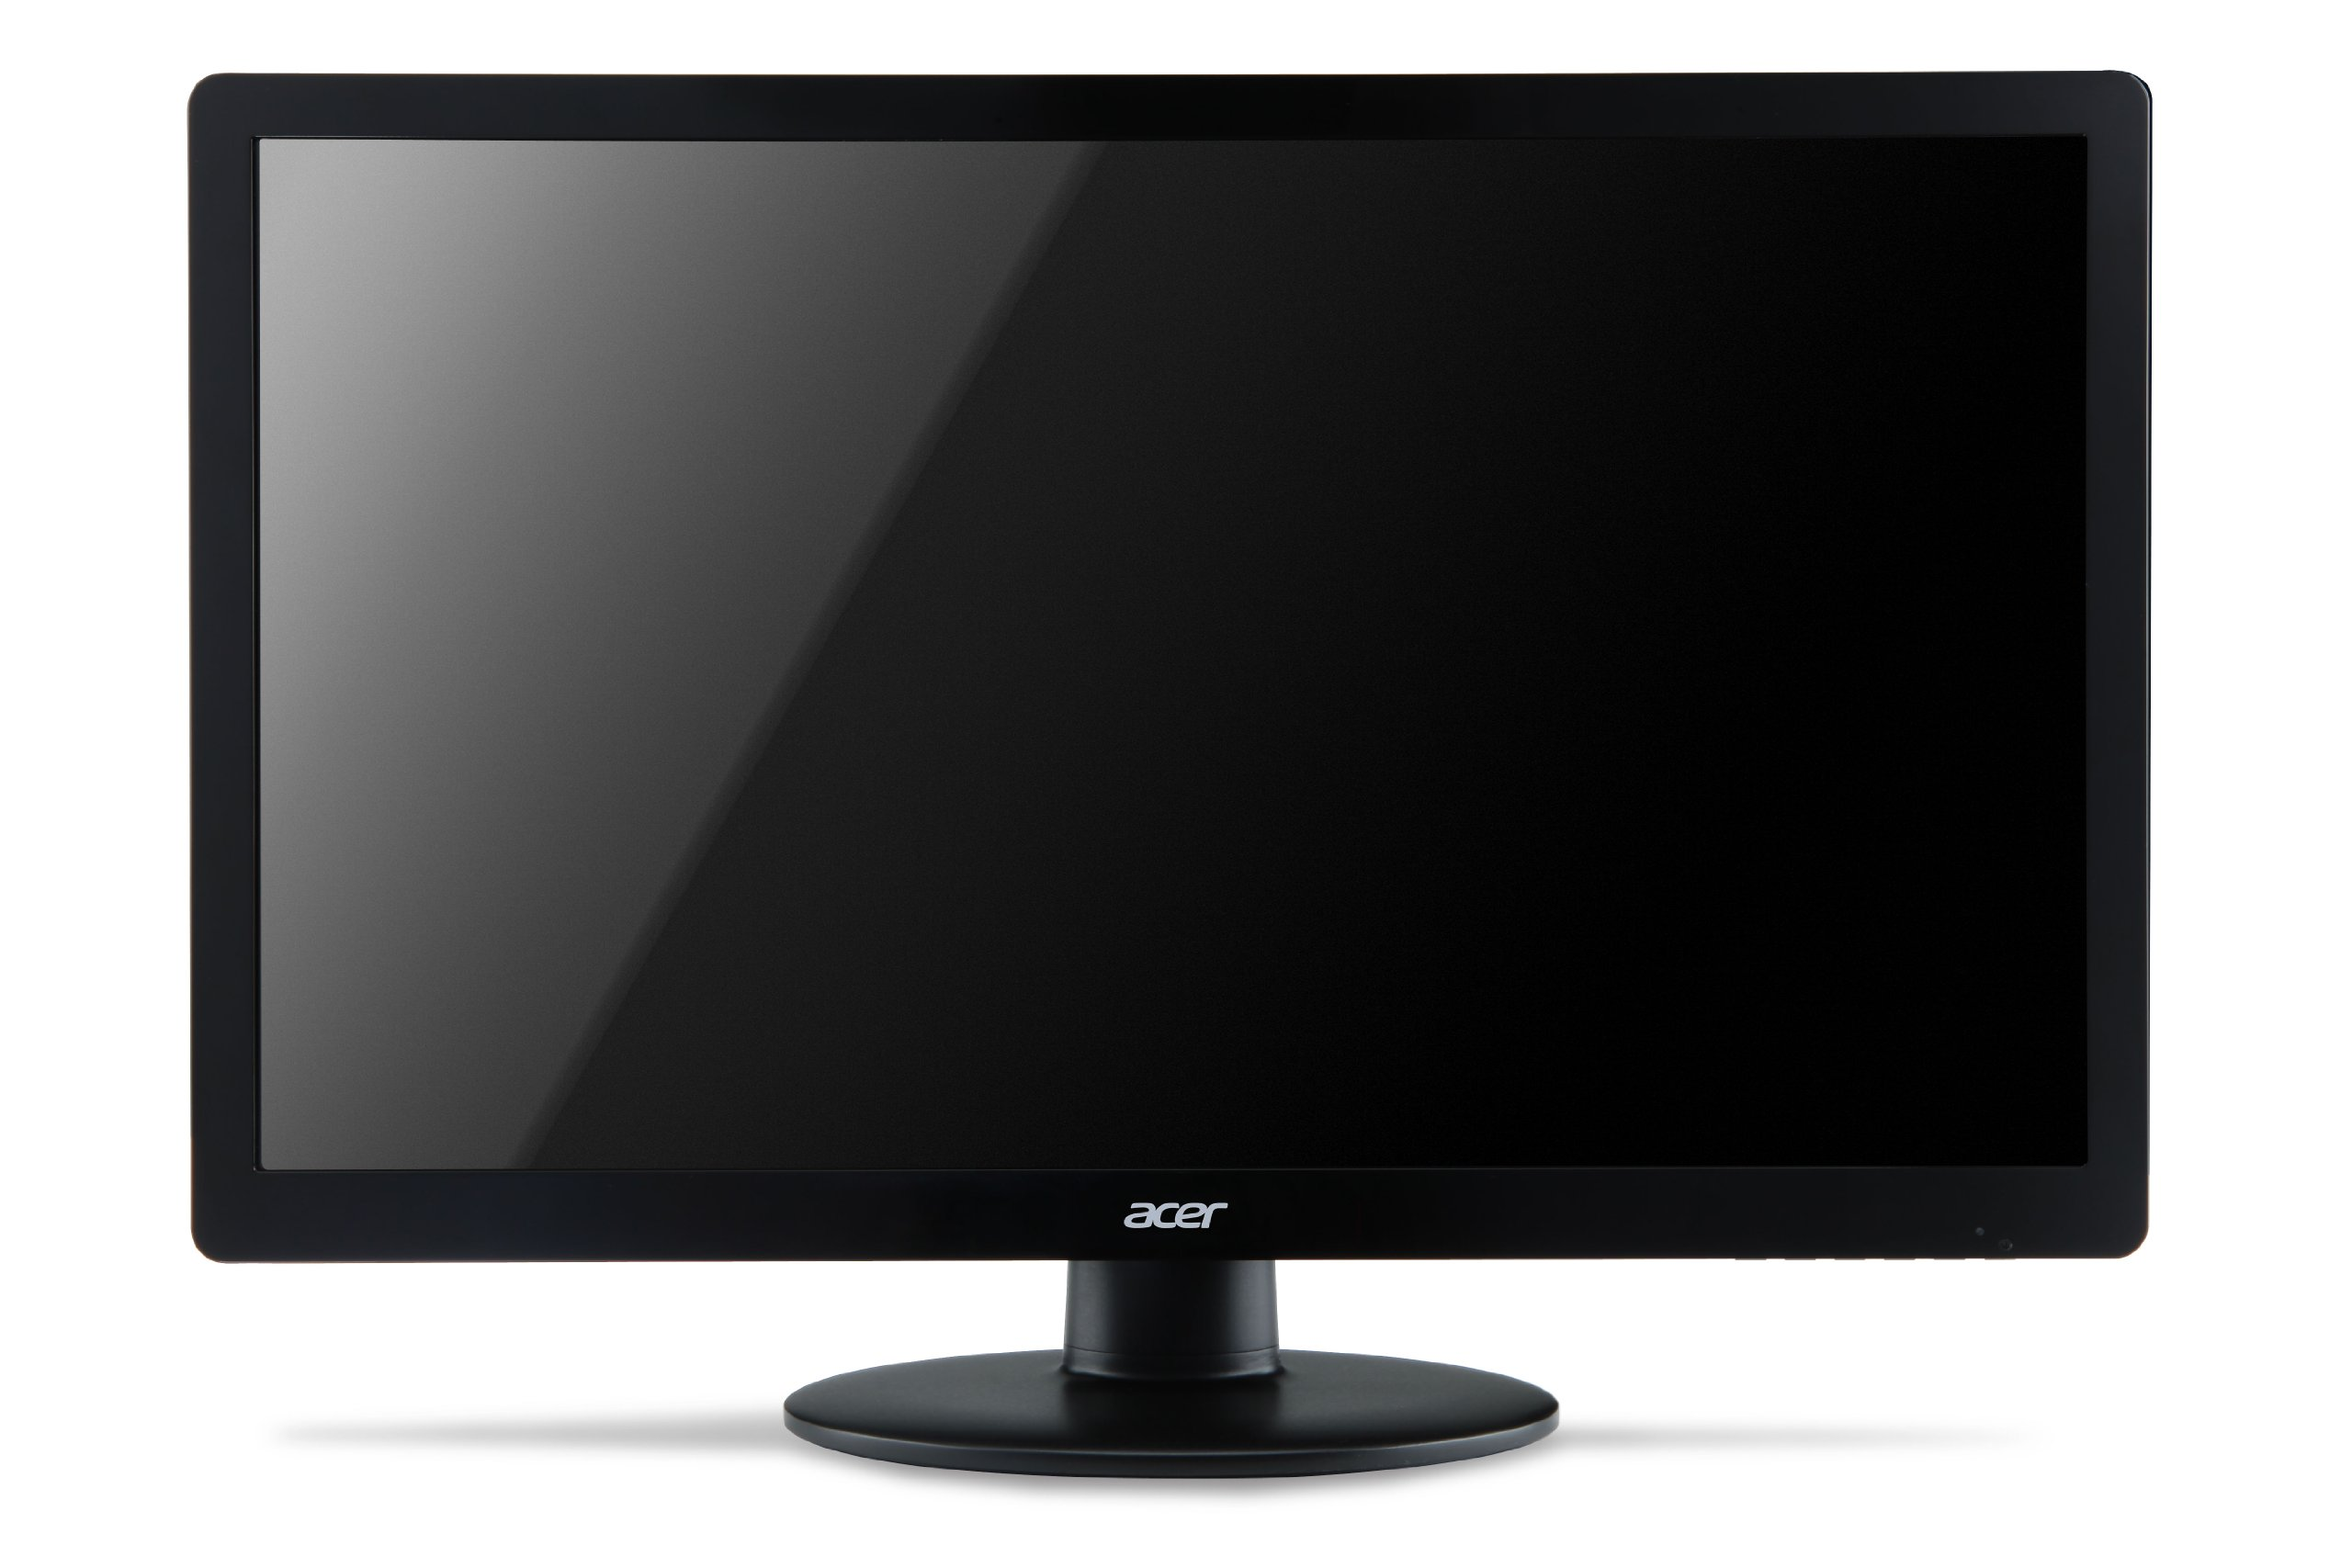 Acer S220HQL Abd 21.5-Inch Widescreen LCD Monitor